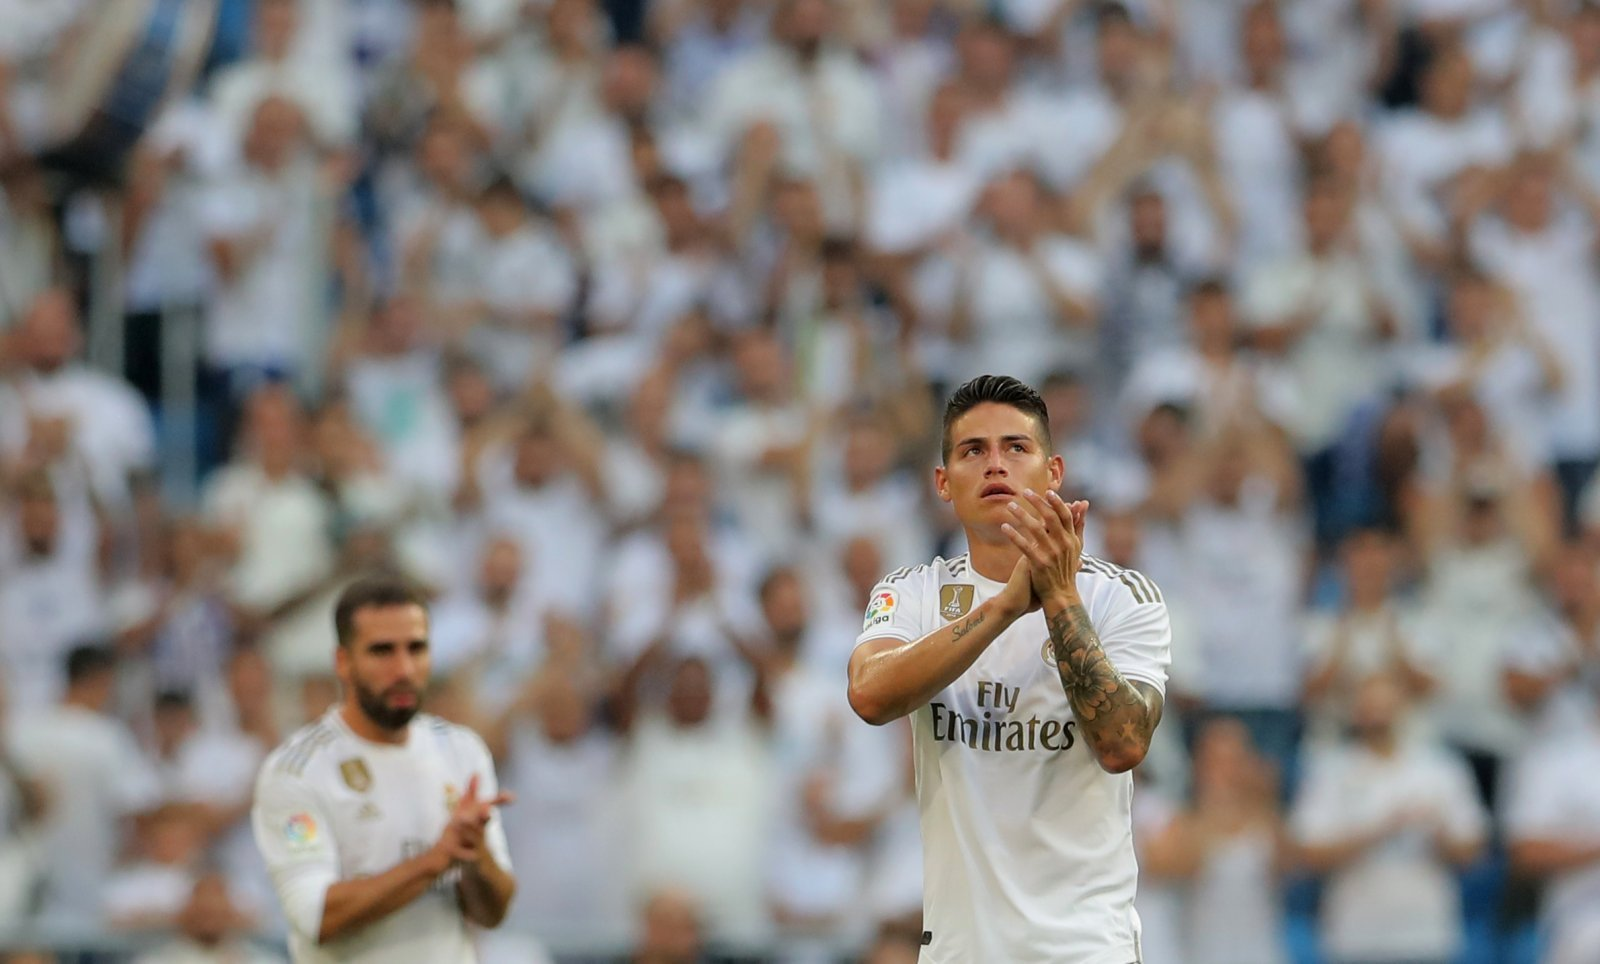 Real Madrid: James Rodriguez suffers calf injury